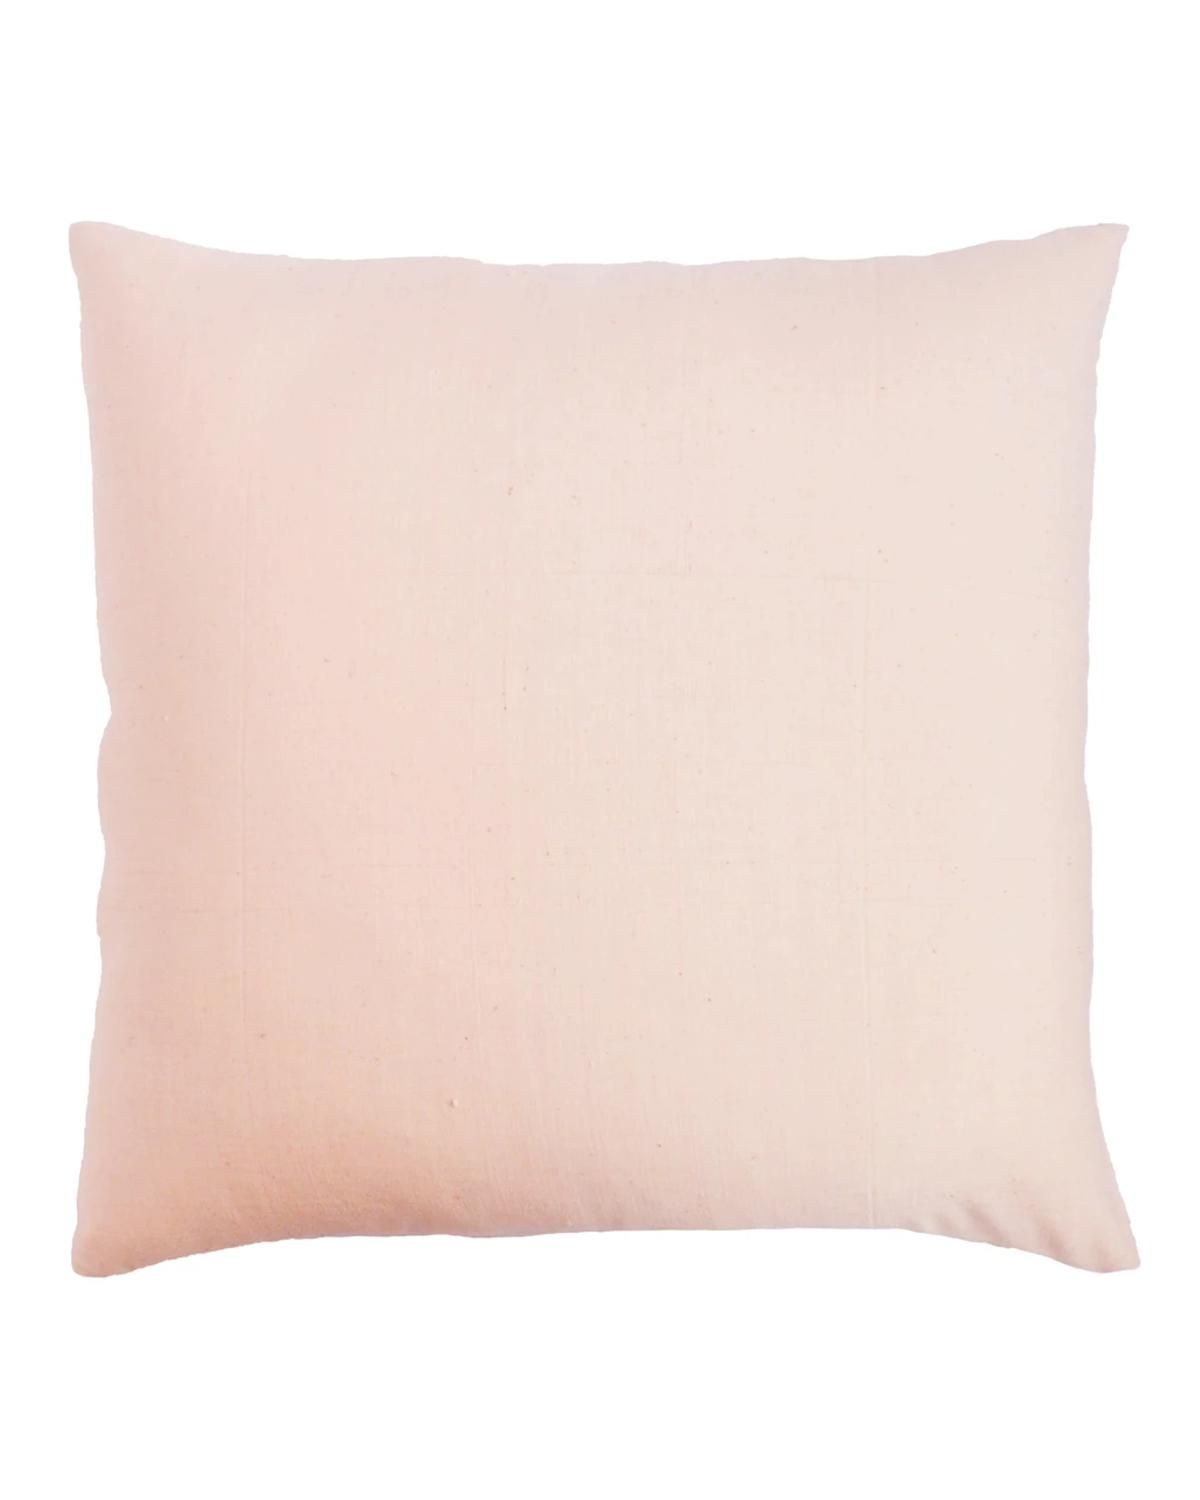 Handwoven Blush Pink Pillow - With Insert